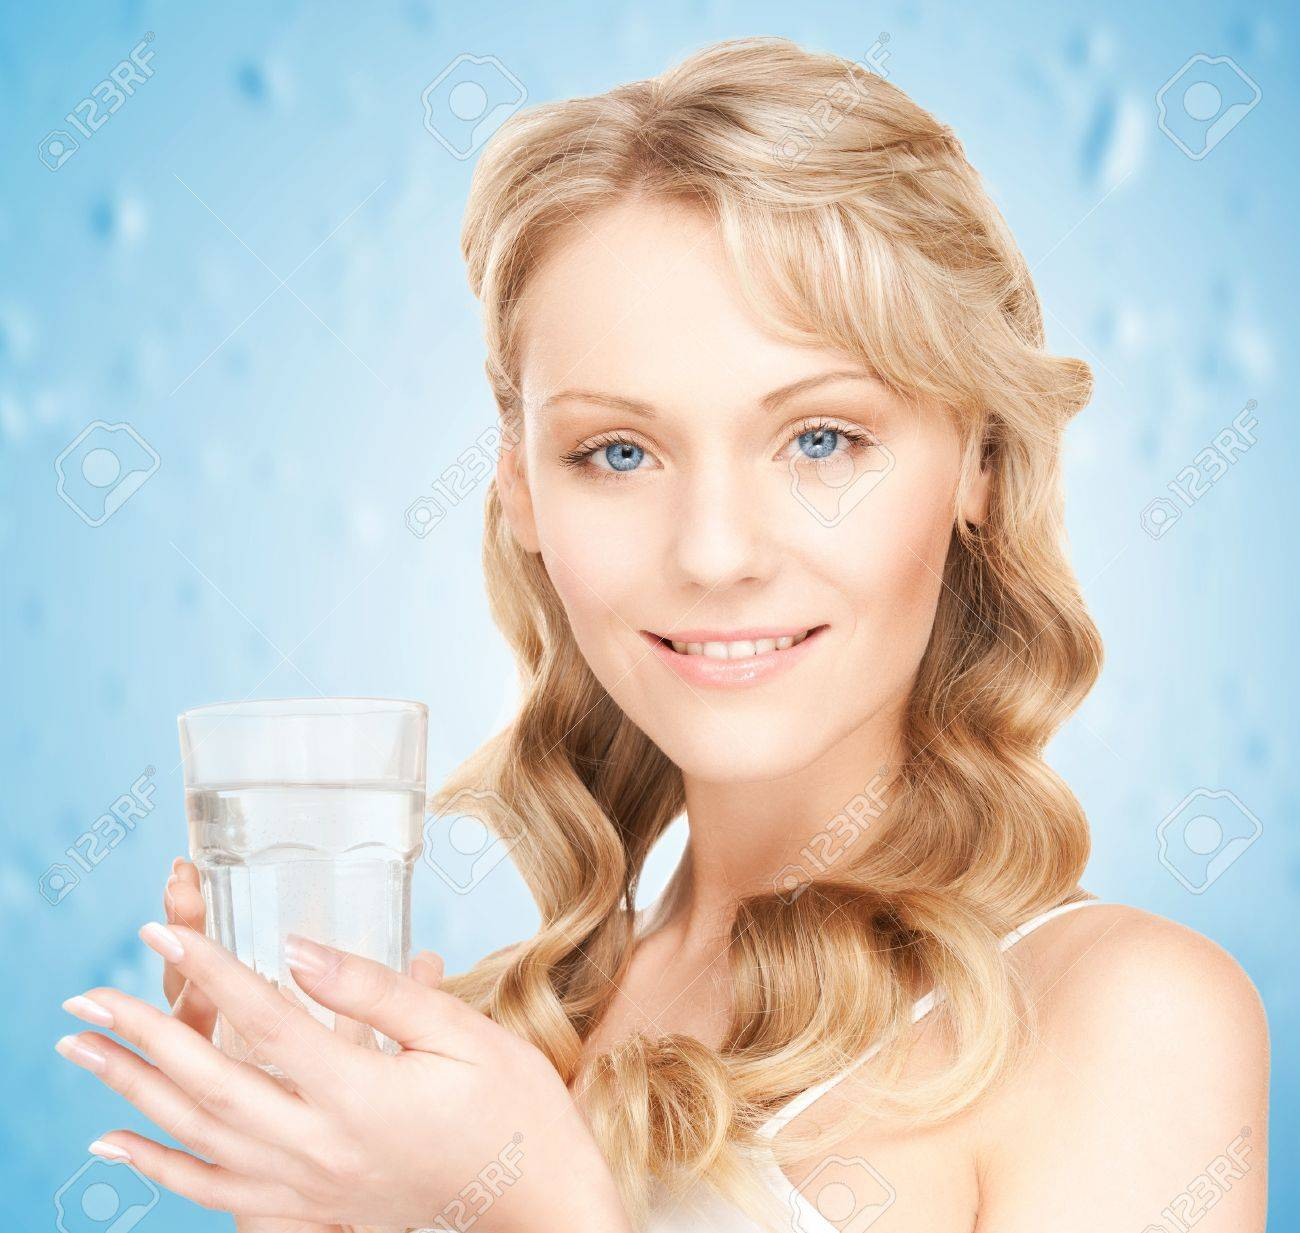 closeup picture of woman holding glass of water Stock Photo - 18126772